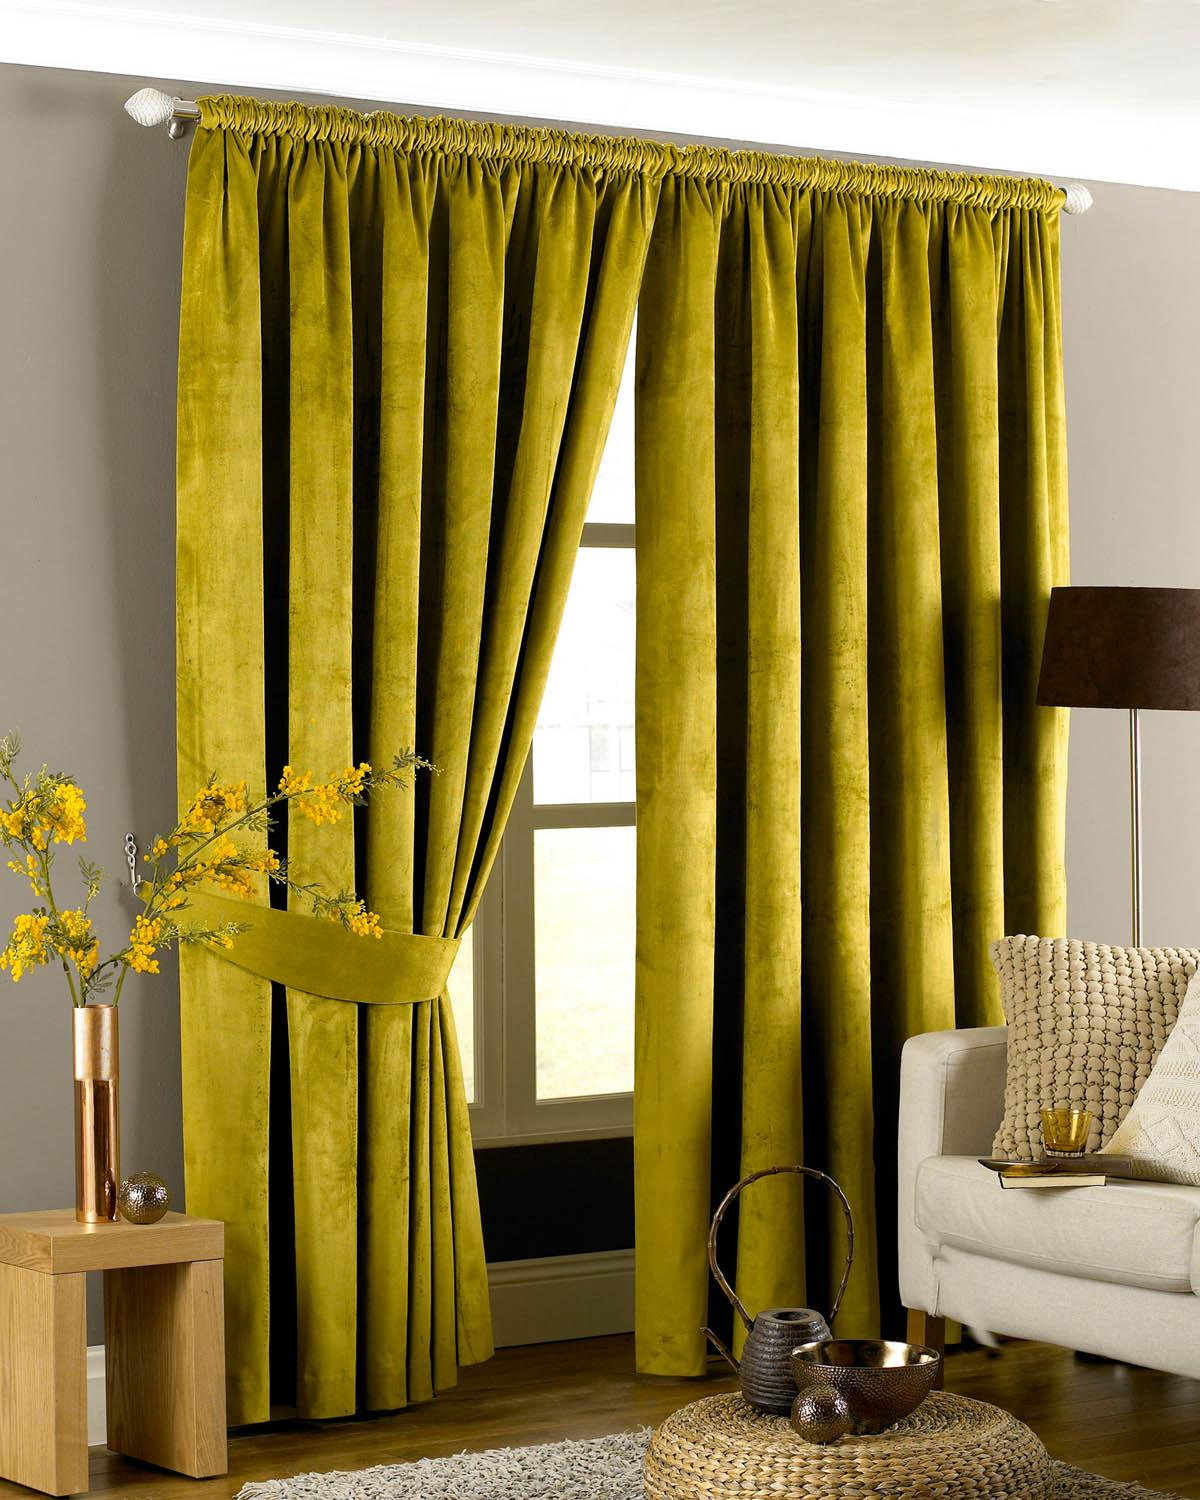 Slot top voile pair olive cheap green curtain voile uk delivery - Emperor Ready Made Faux Suede Lined Curtains